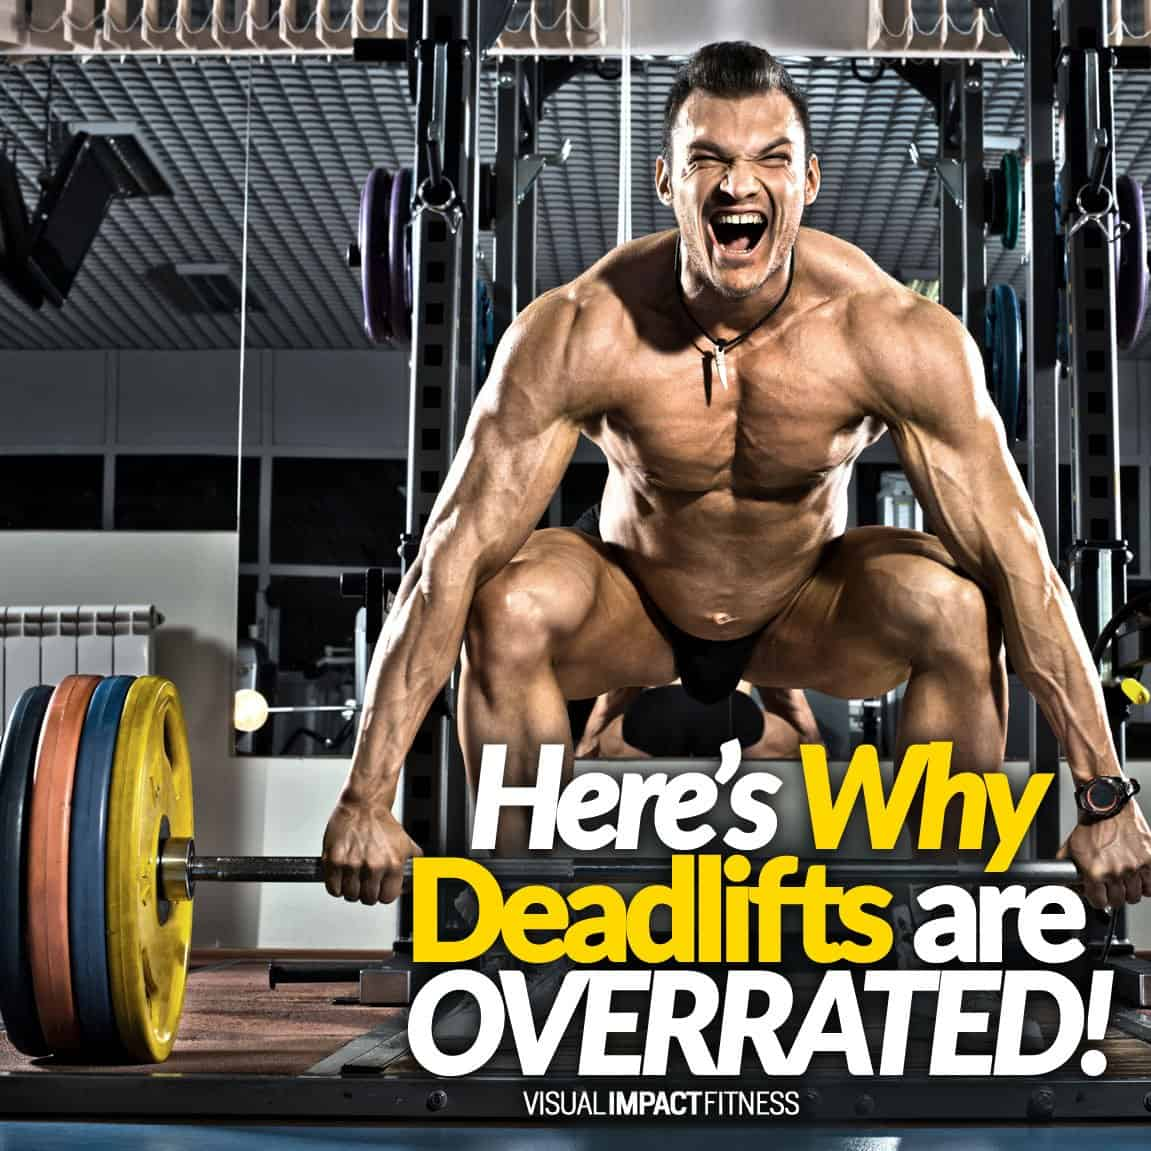 Why Deadlifts are OVERRATED